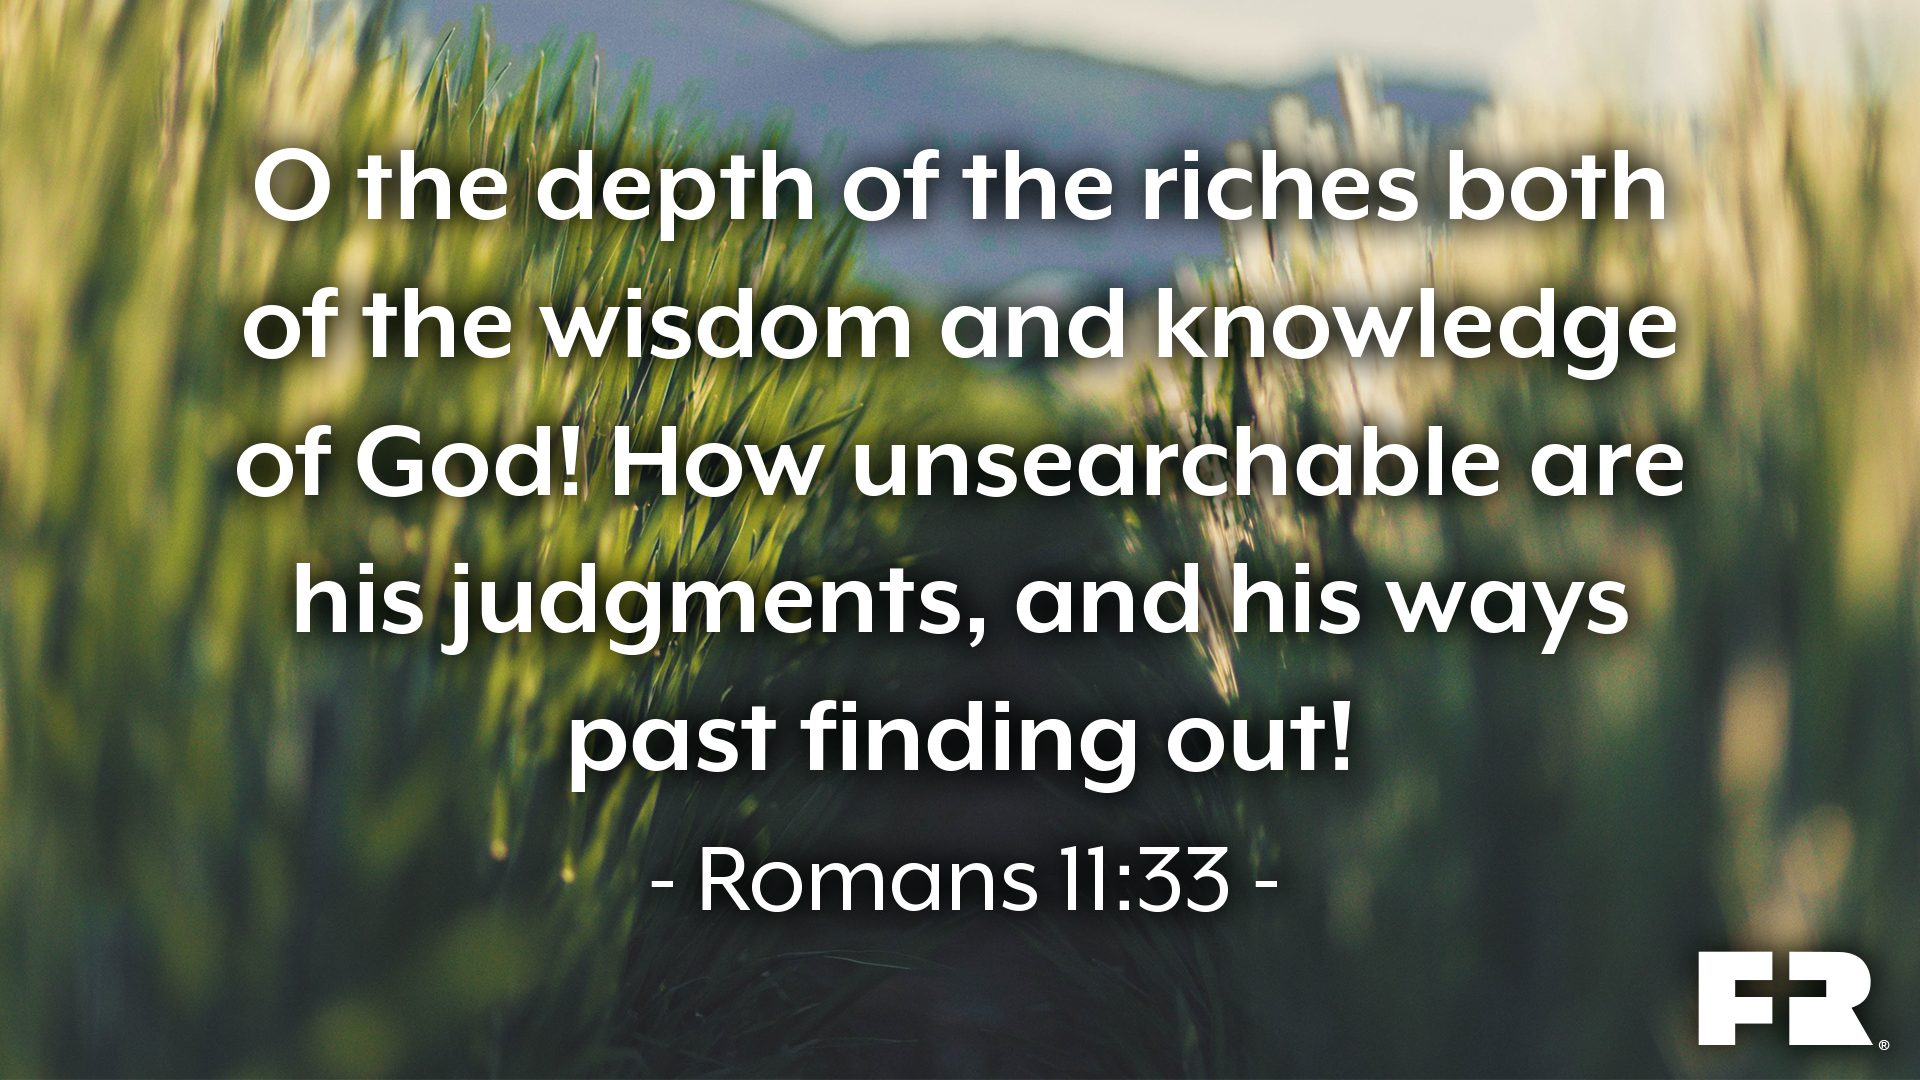 """O the depth of the riches both of the wisdom and knowledge of God! how unsearchable are his judgments, and his ways past finding out!"""